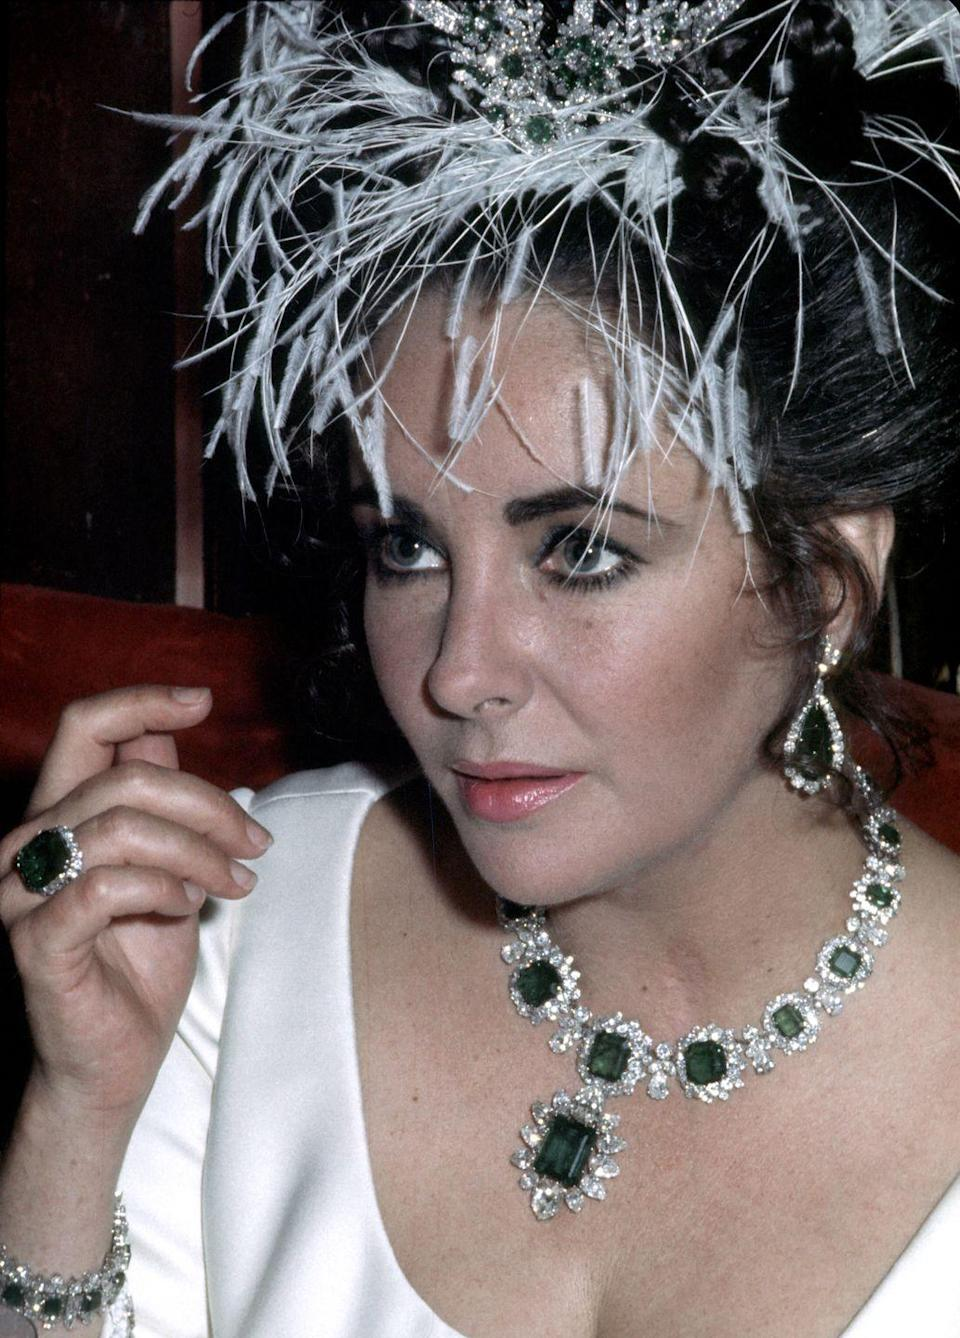 "<p>Notorious for her love of megawatt jewelry, Elizabeth Taylor's collection of diamonds, rubies, and more sold at a Christie's auction for a whopping total of $116 million, according to <em><a href=""https://www.businessinsider.com/elizabeth-taylor-jewelry-sale-auction-records-2011-12"" rel=""nofollow noopener"" target=""_blank"" data-ylk=""slk:Business Insider"" class=""link rapid-noclick-resp"">Business Insider</a></em>. One of her most famous sets of jewelry was this suite of Bulgari diamond and emerald pieces, a gift from Richard Burton. </p>"